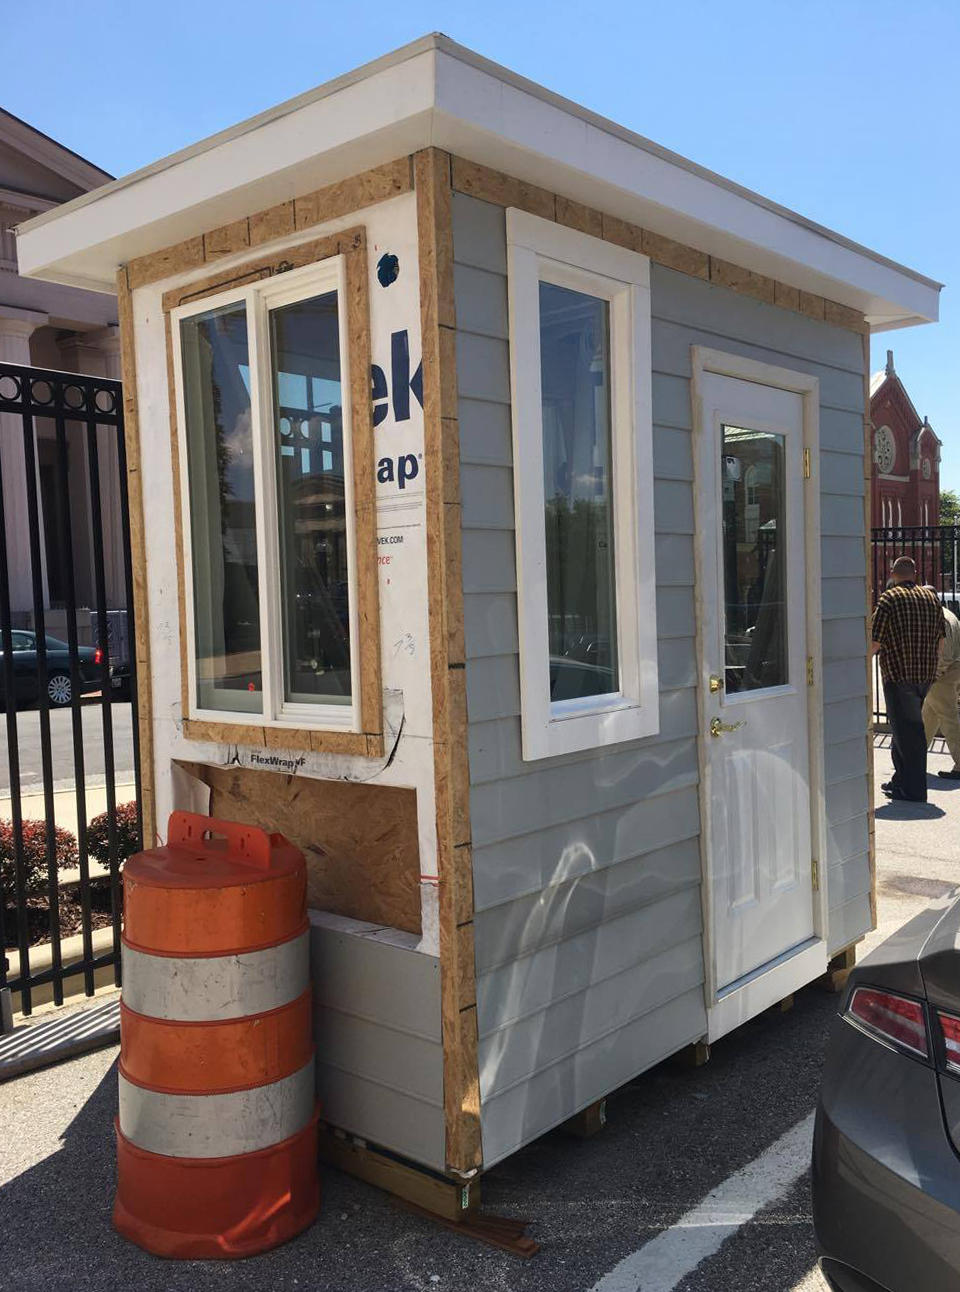 Delbert Adams Construction Group Builds New Security Guard Booth for Helping Up Mission